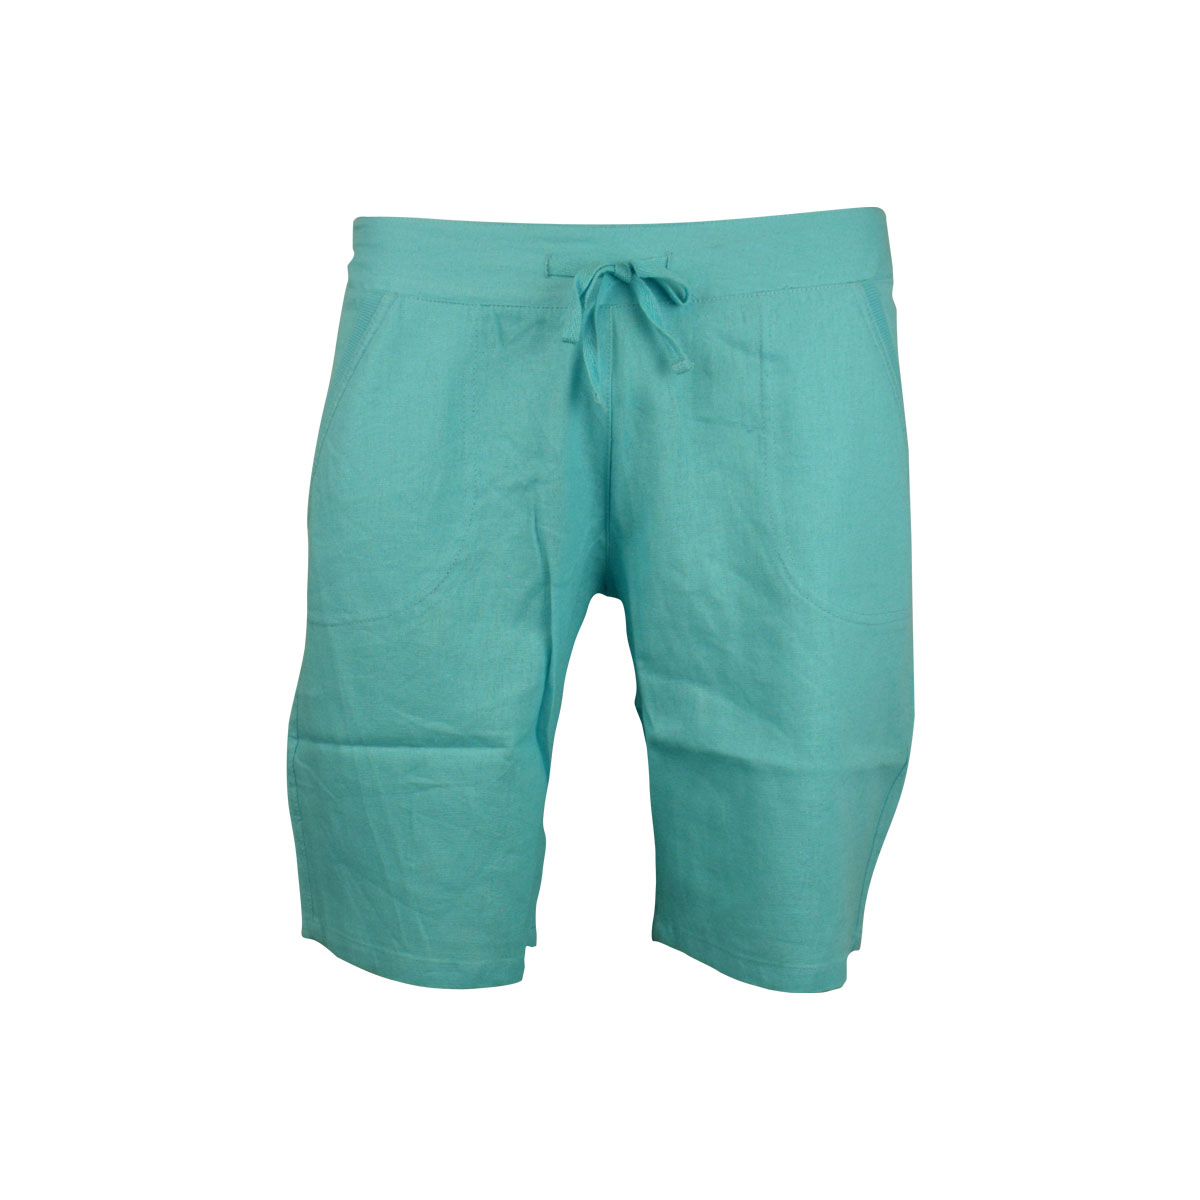 Womens Linen Shorts 3/4 Length Trousers Shorts Ladies Casual Knee ...